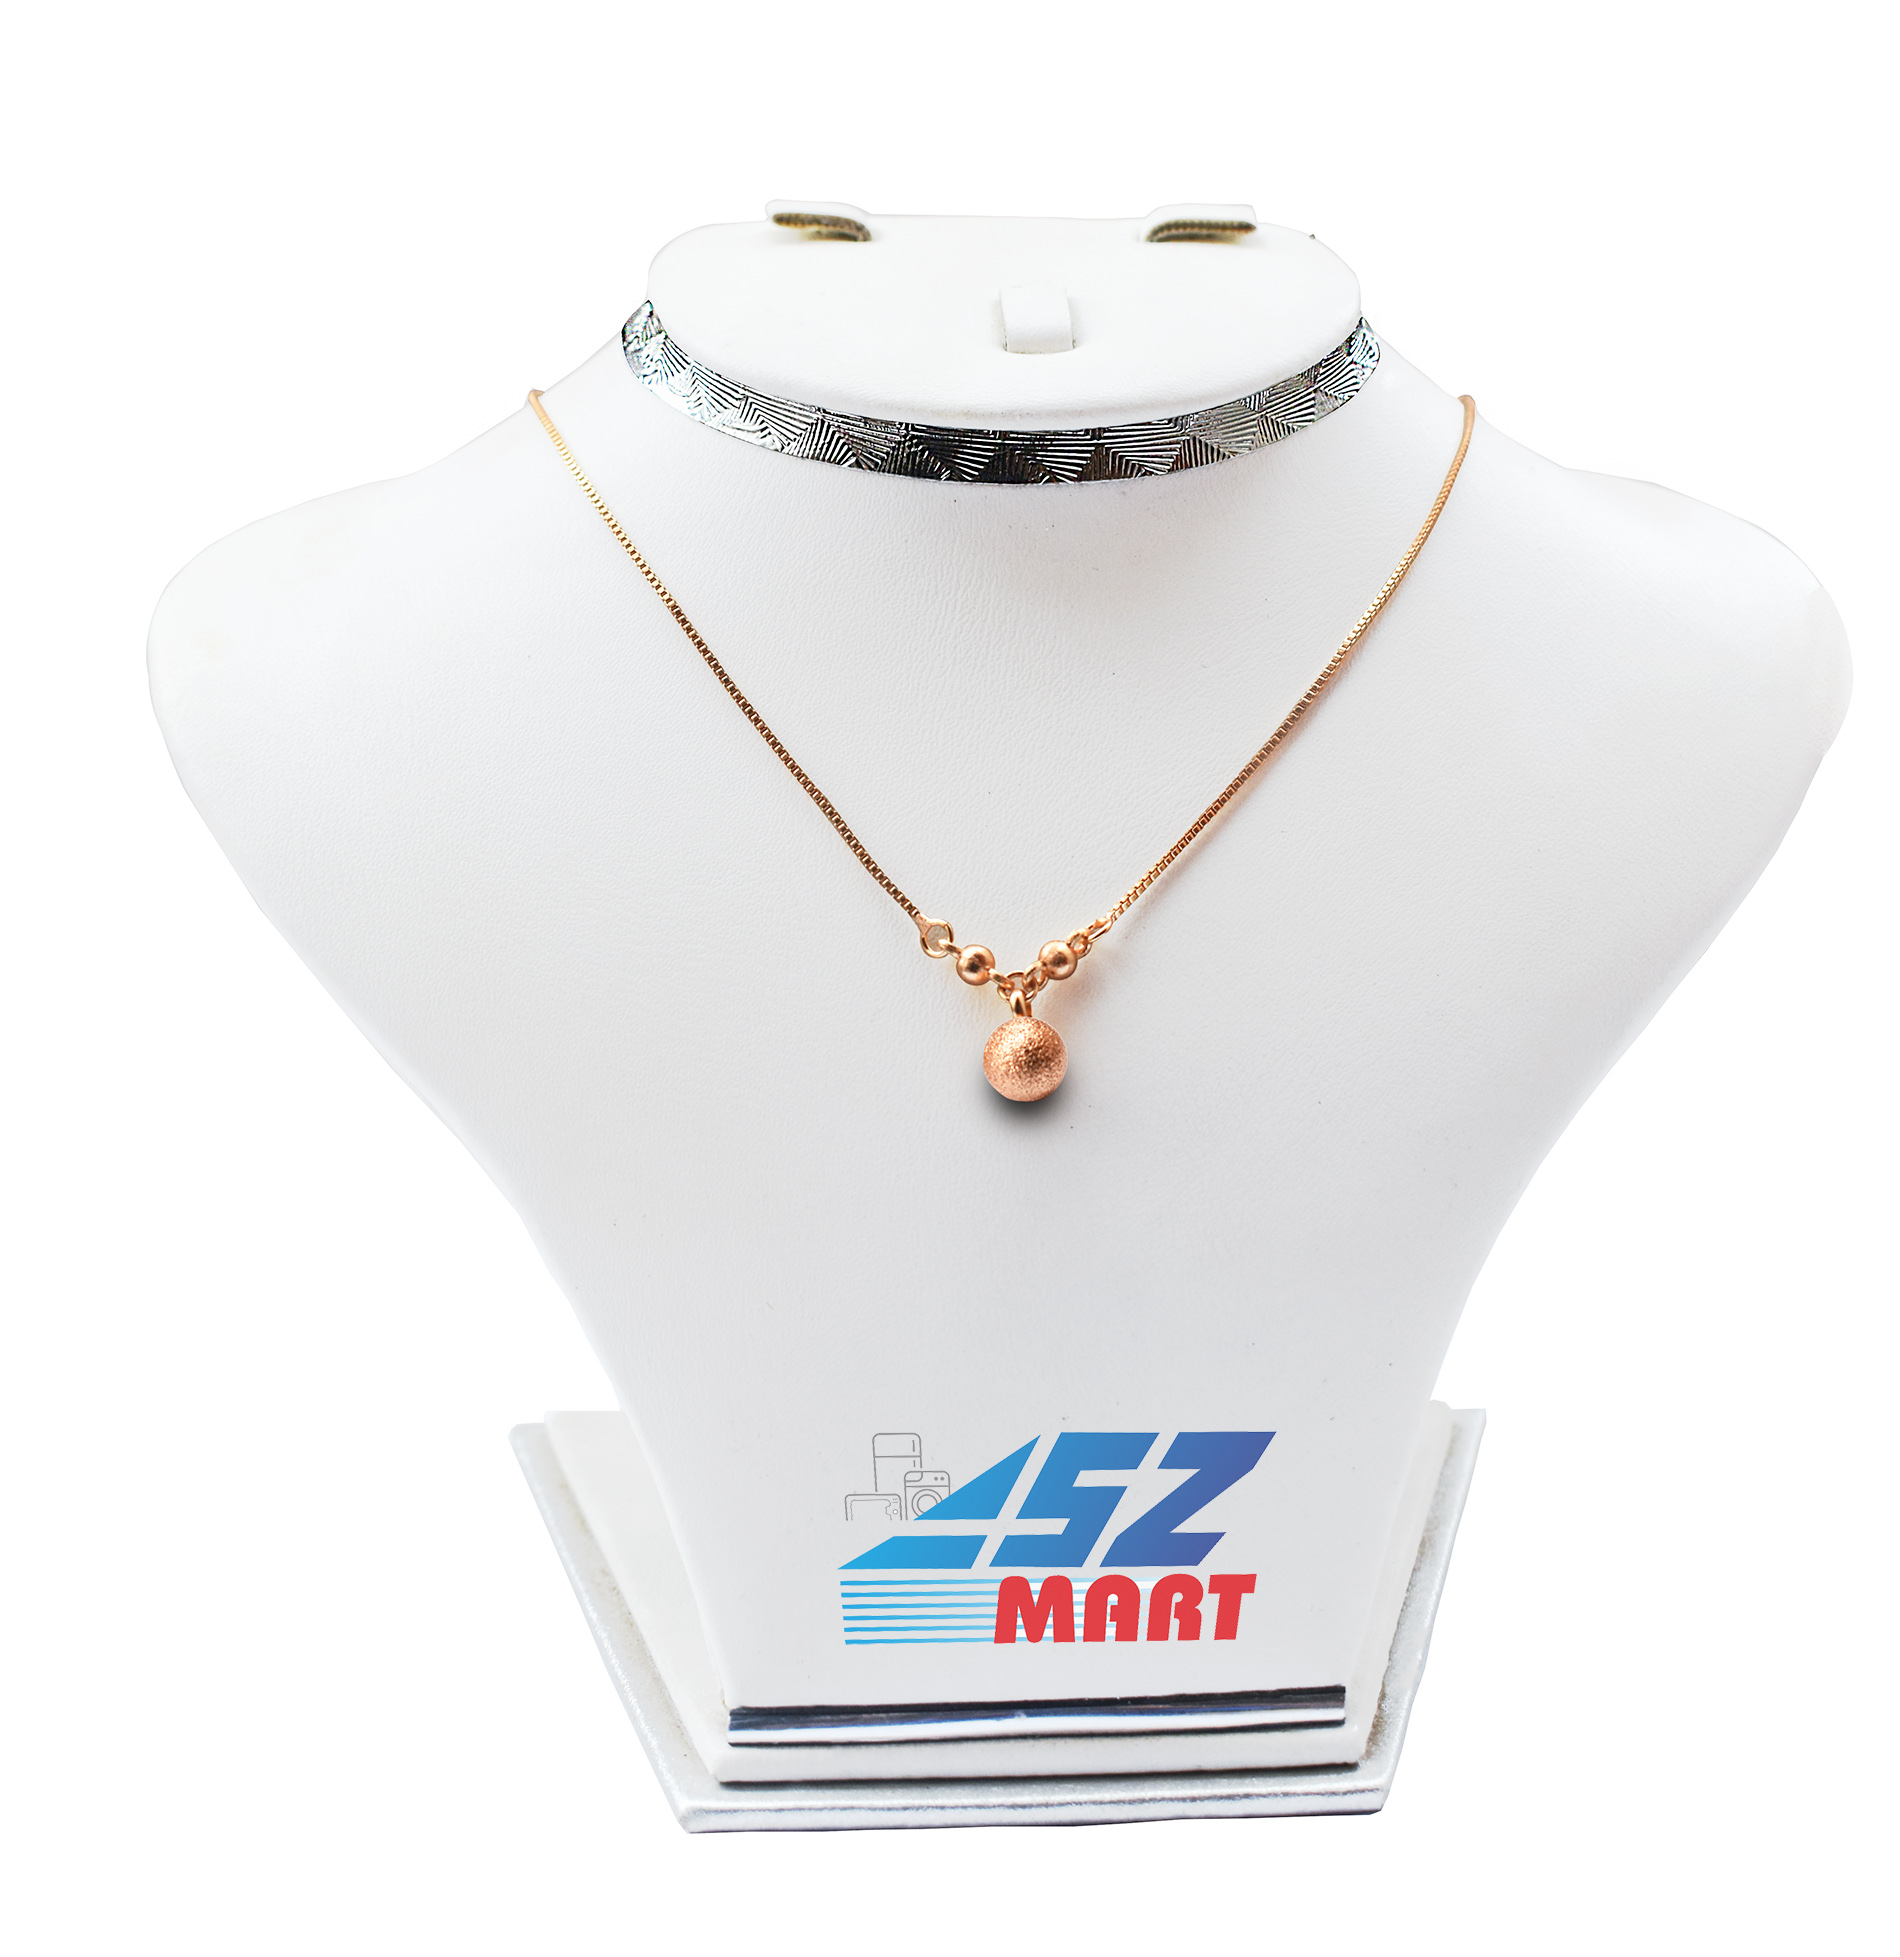 Golden Pendant Chain Necklace for Girls and Women by ASZ Mart golden ball pandant chain nacklace